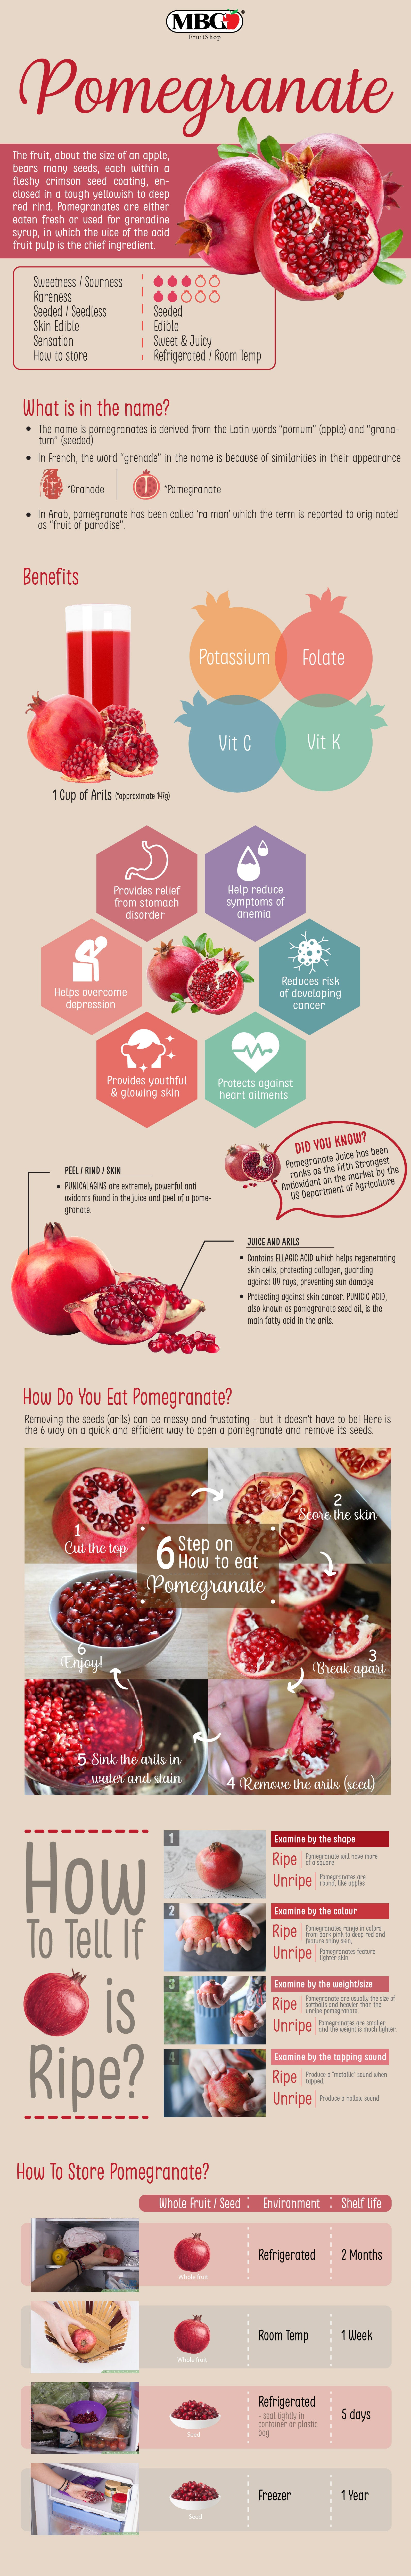 MBG FruitShop Pomegranate